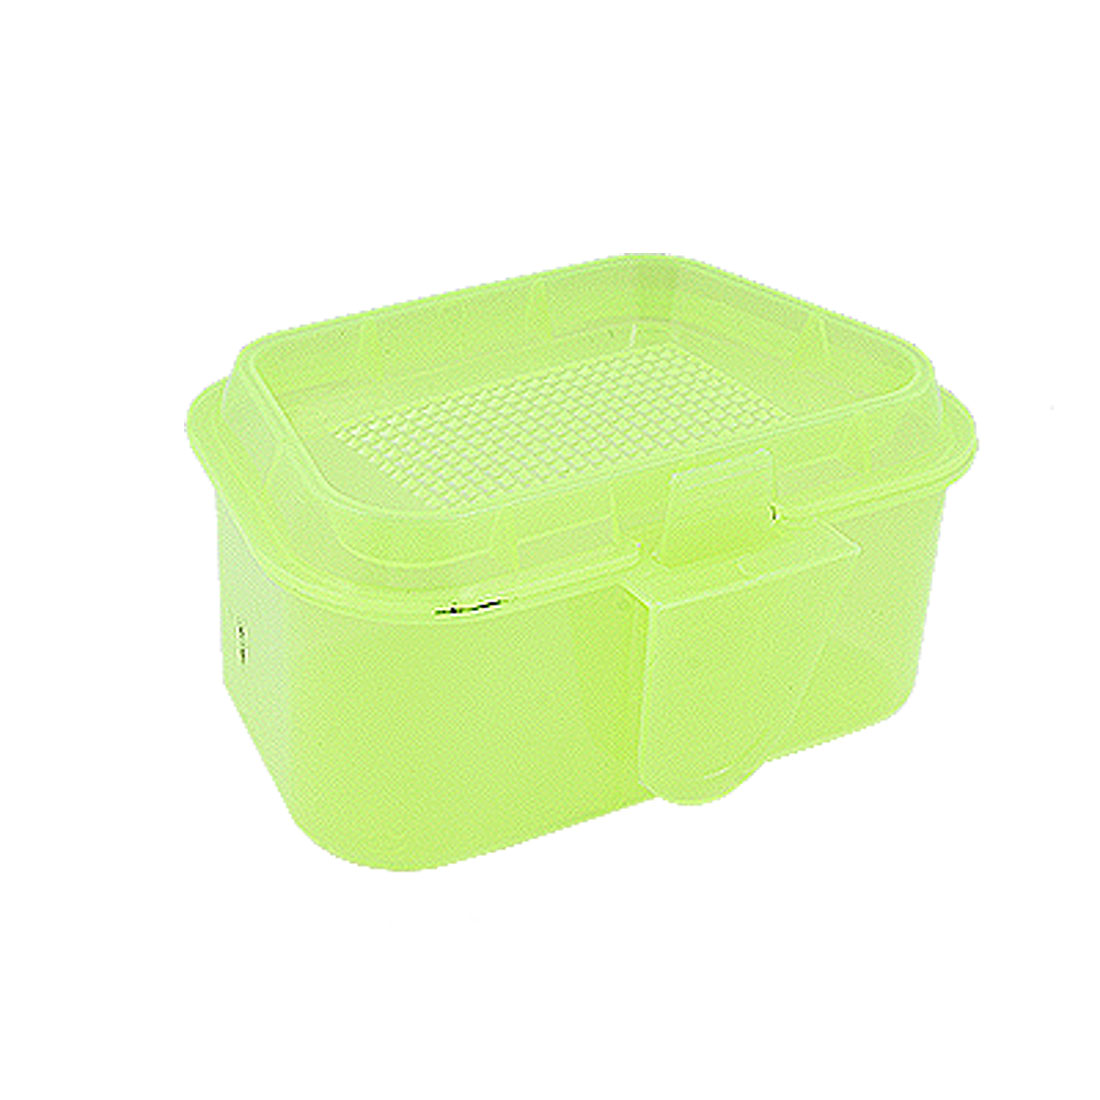 Hard Plastic Yellow Green Trapezoid Fishing Lure Bait Case